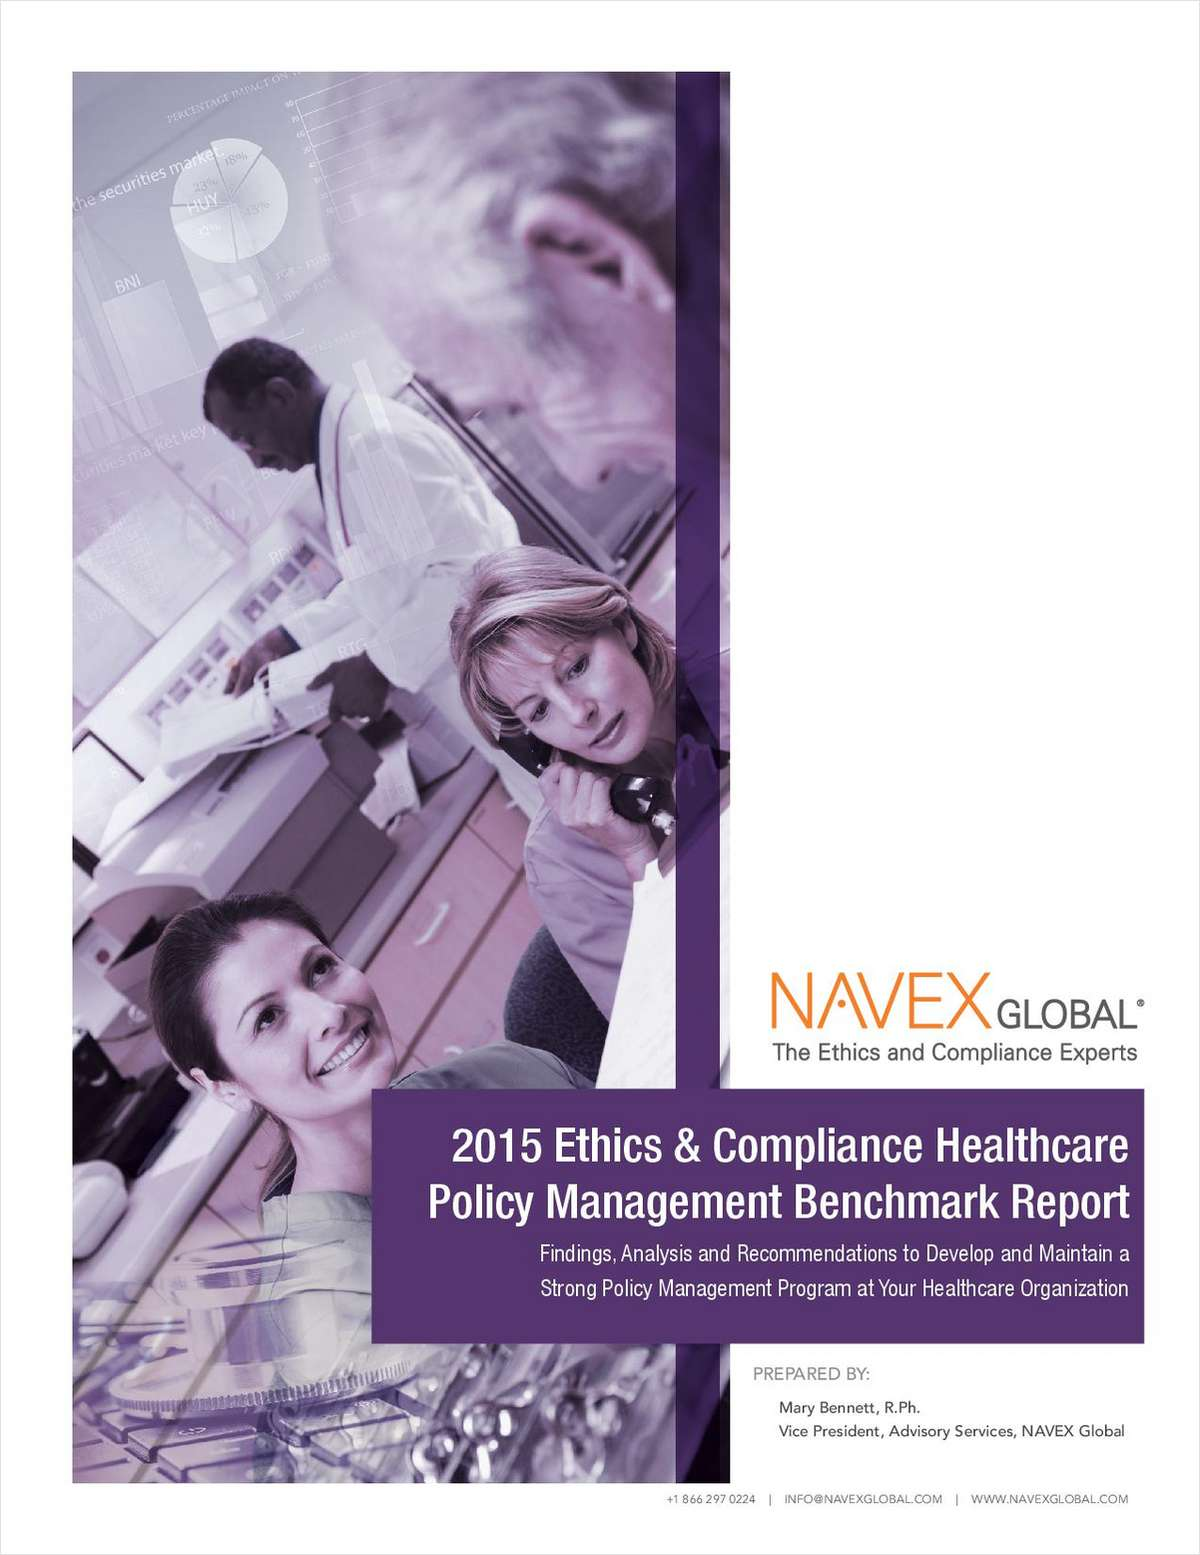 Unprecedented Research on Policy Management Programs at Healthcare Organizations